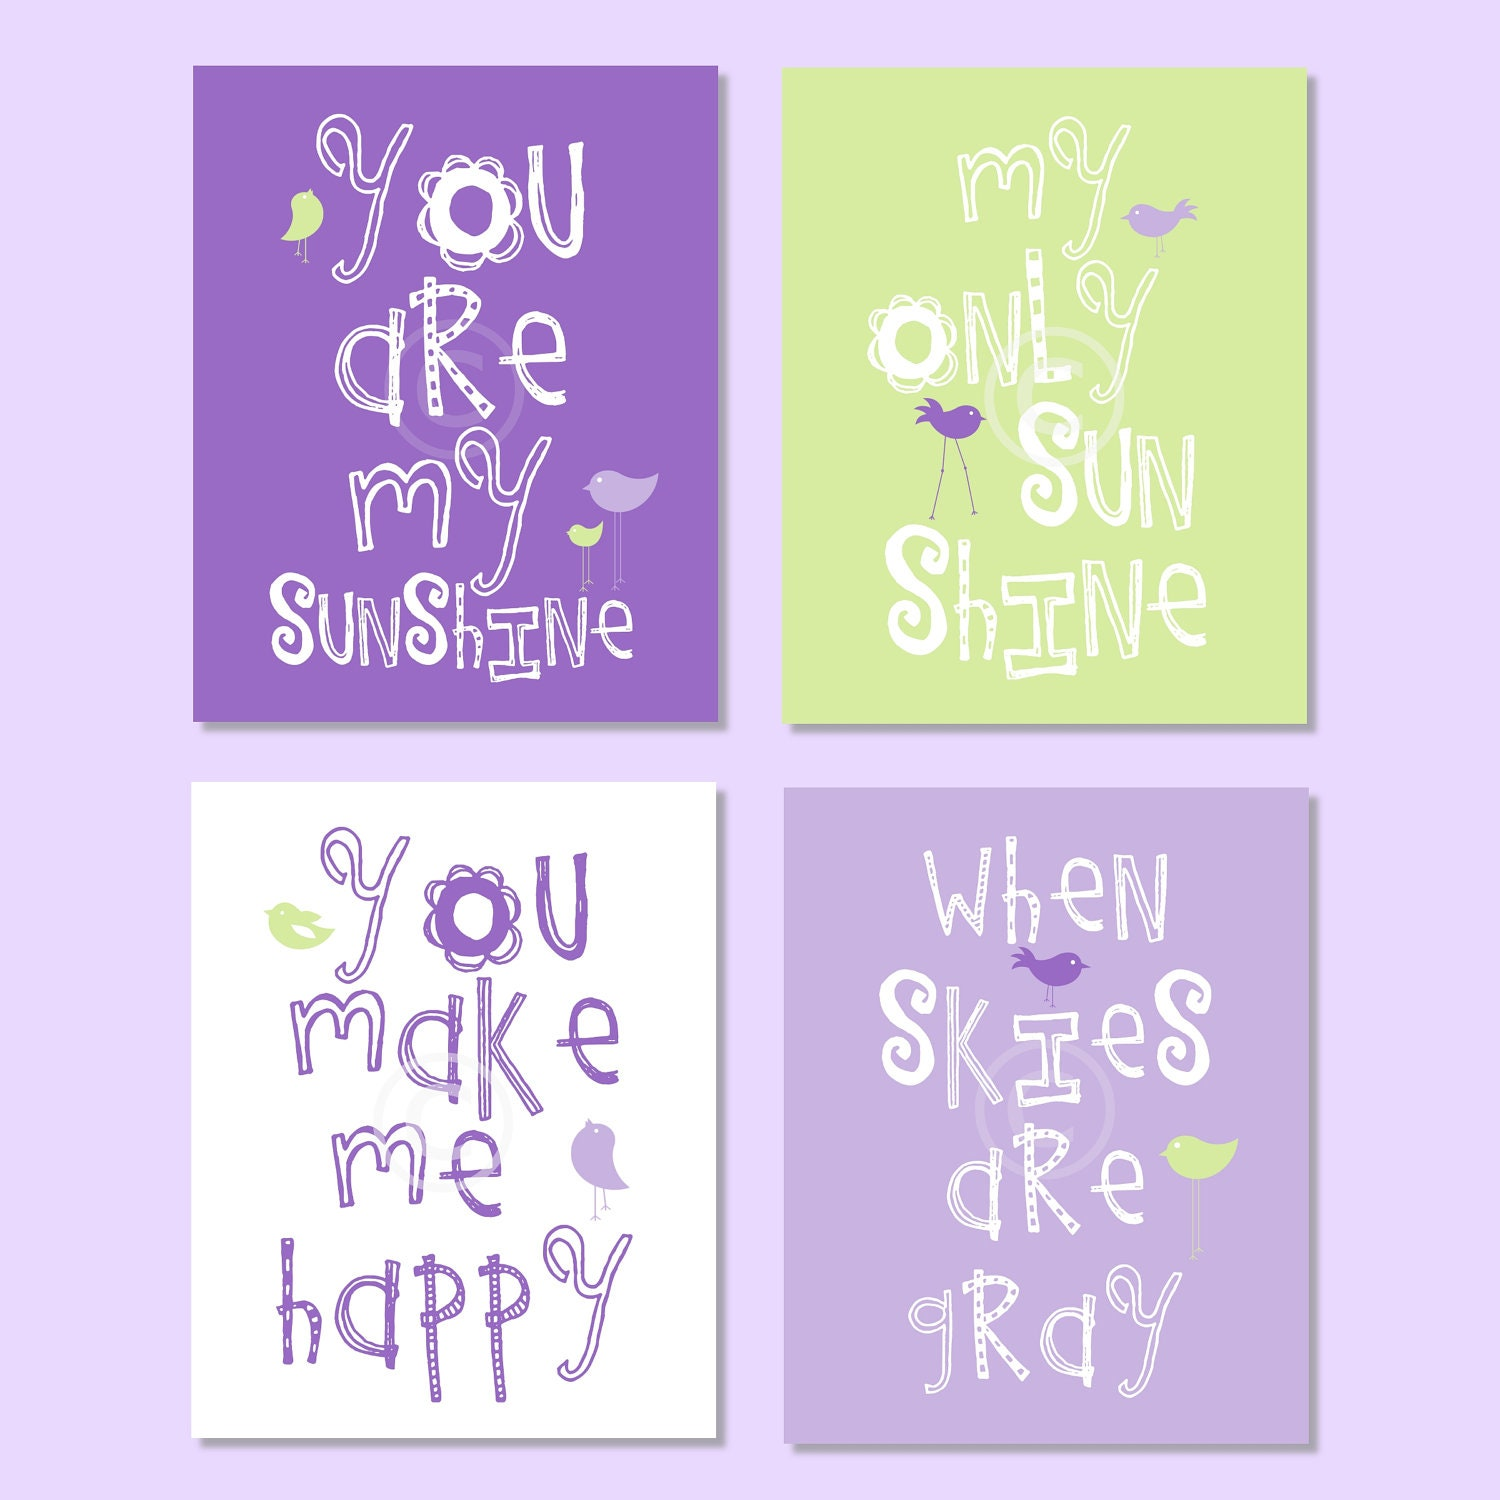 Popular items for kids wall art on Etsy